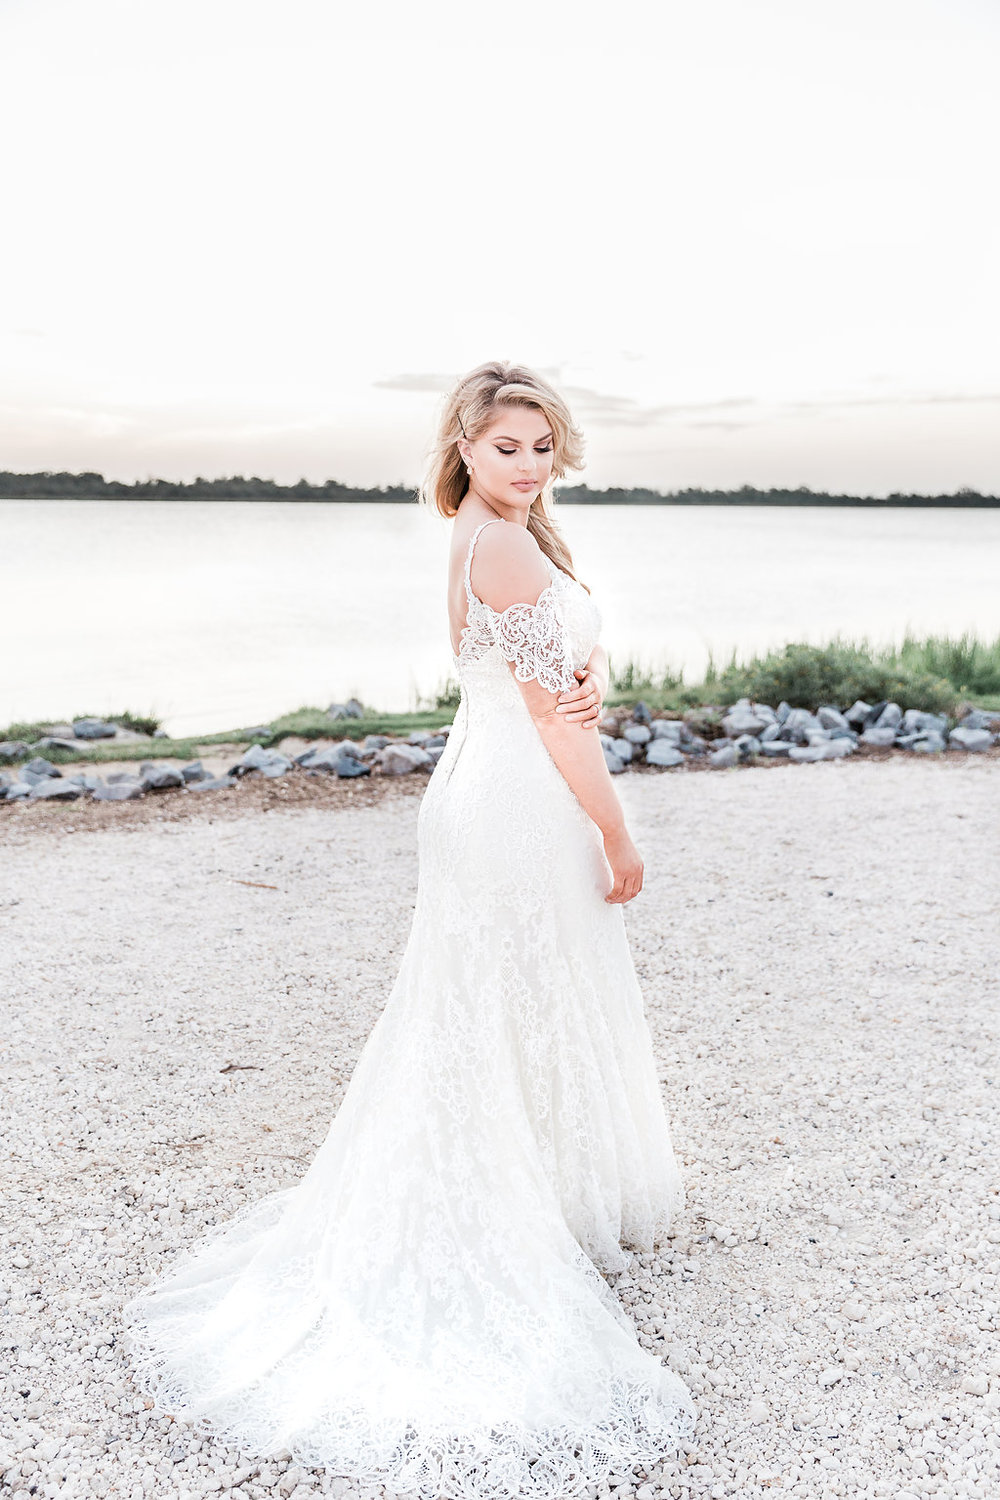 savannah-bridal-shop-beachy-bridal-glam-beach-wedding-looks-and-inspiration-southern-lens-photography-maggie-sottero-1.jpg